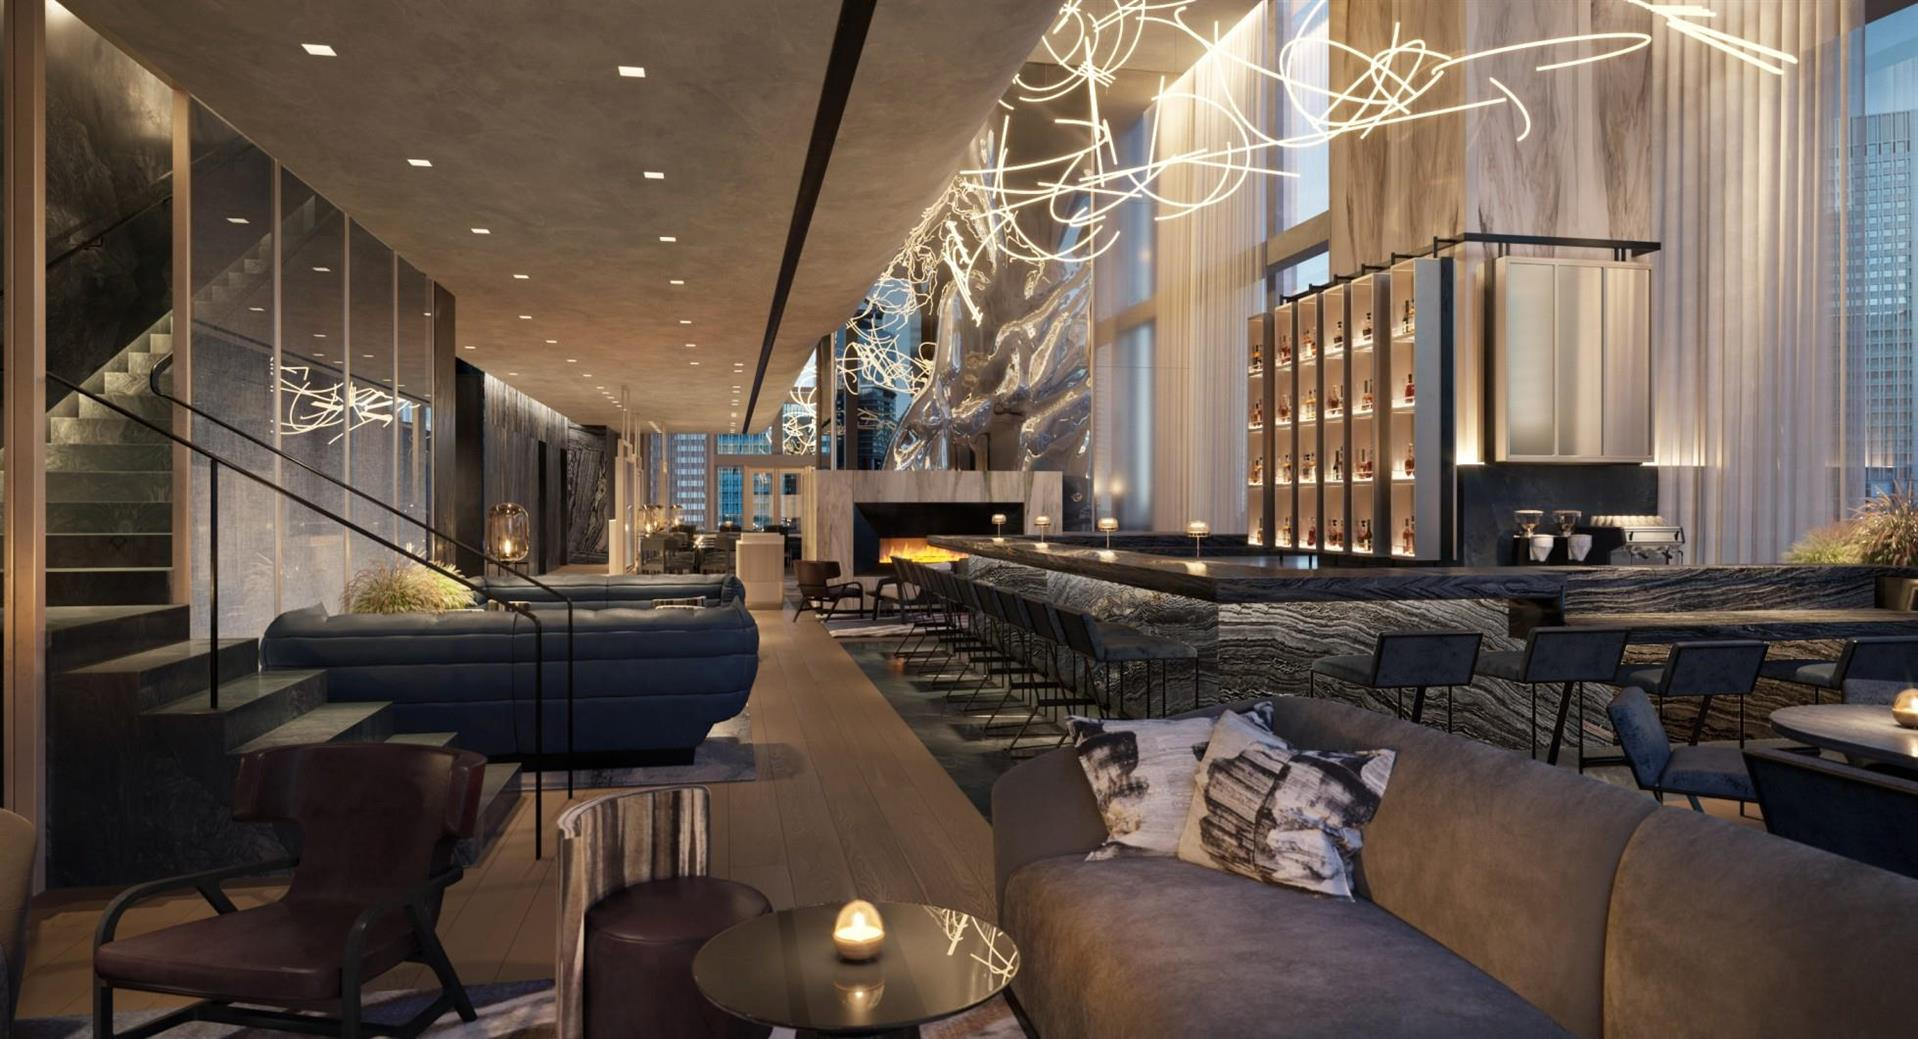 first look inside new york's new luxurious equinox hotel